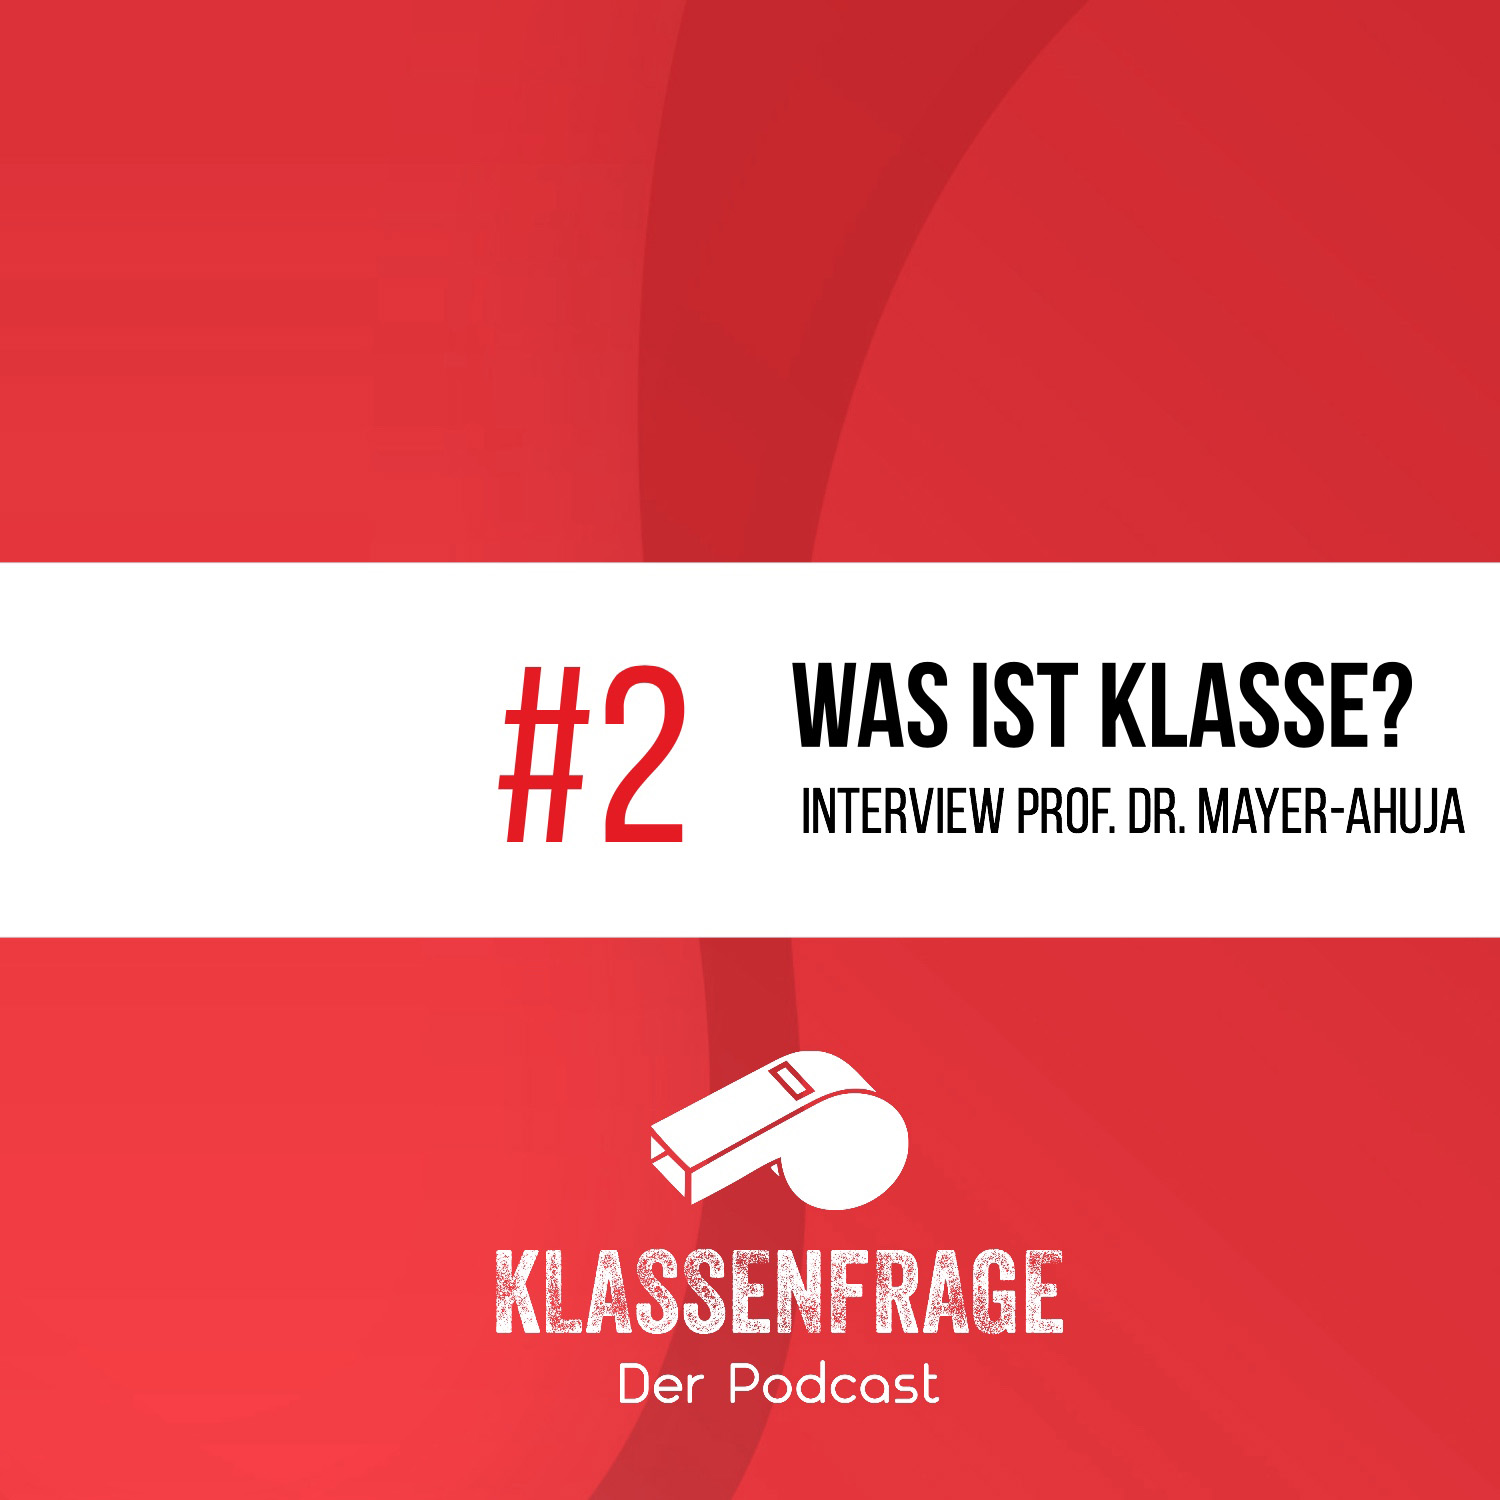 #2 Was ist Klasse? Interview mit Prof. Dr. Mayer- Ahuja